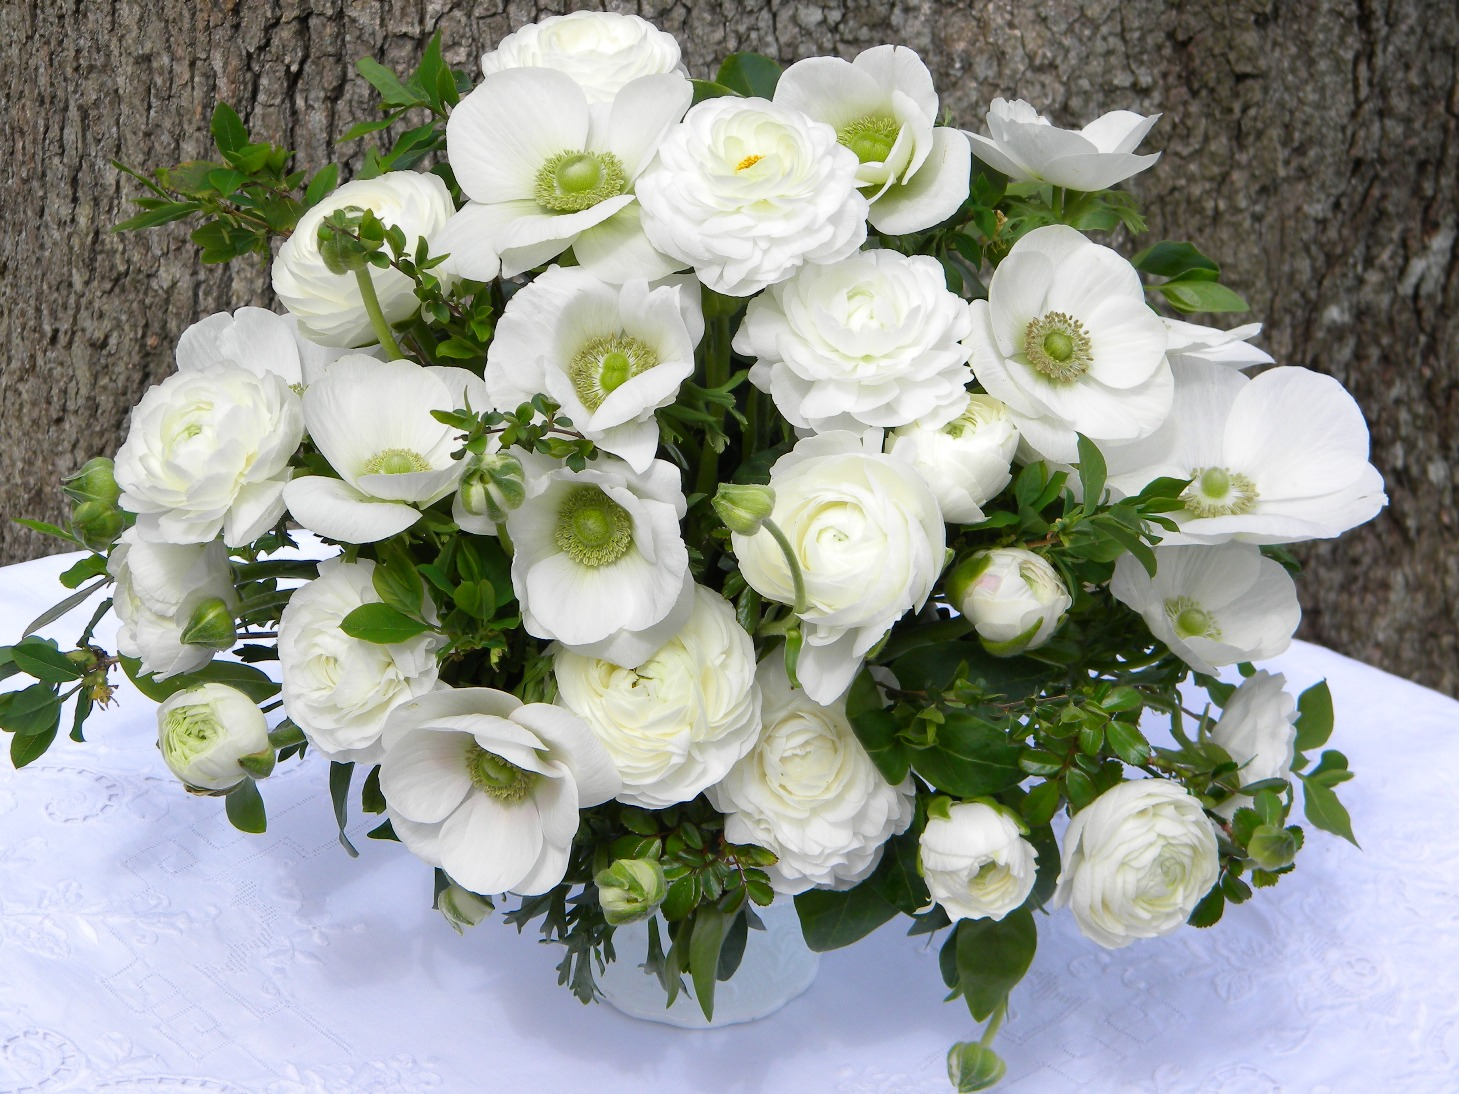 wedding flowers from springwell elegant white ranunculus and anemones for springtime weddings. Black Bedroom Furniture Sets. Home Design Ideas